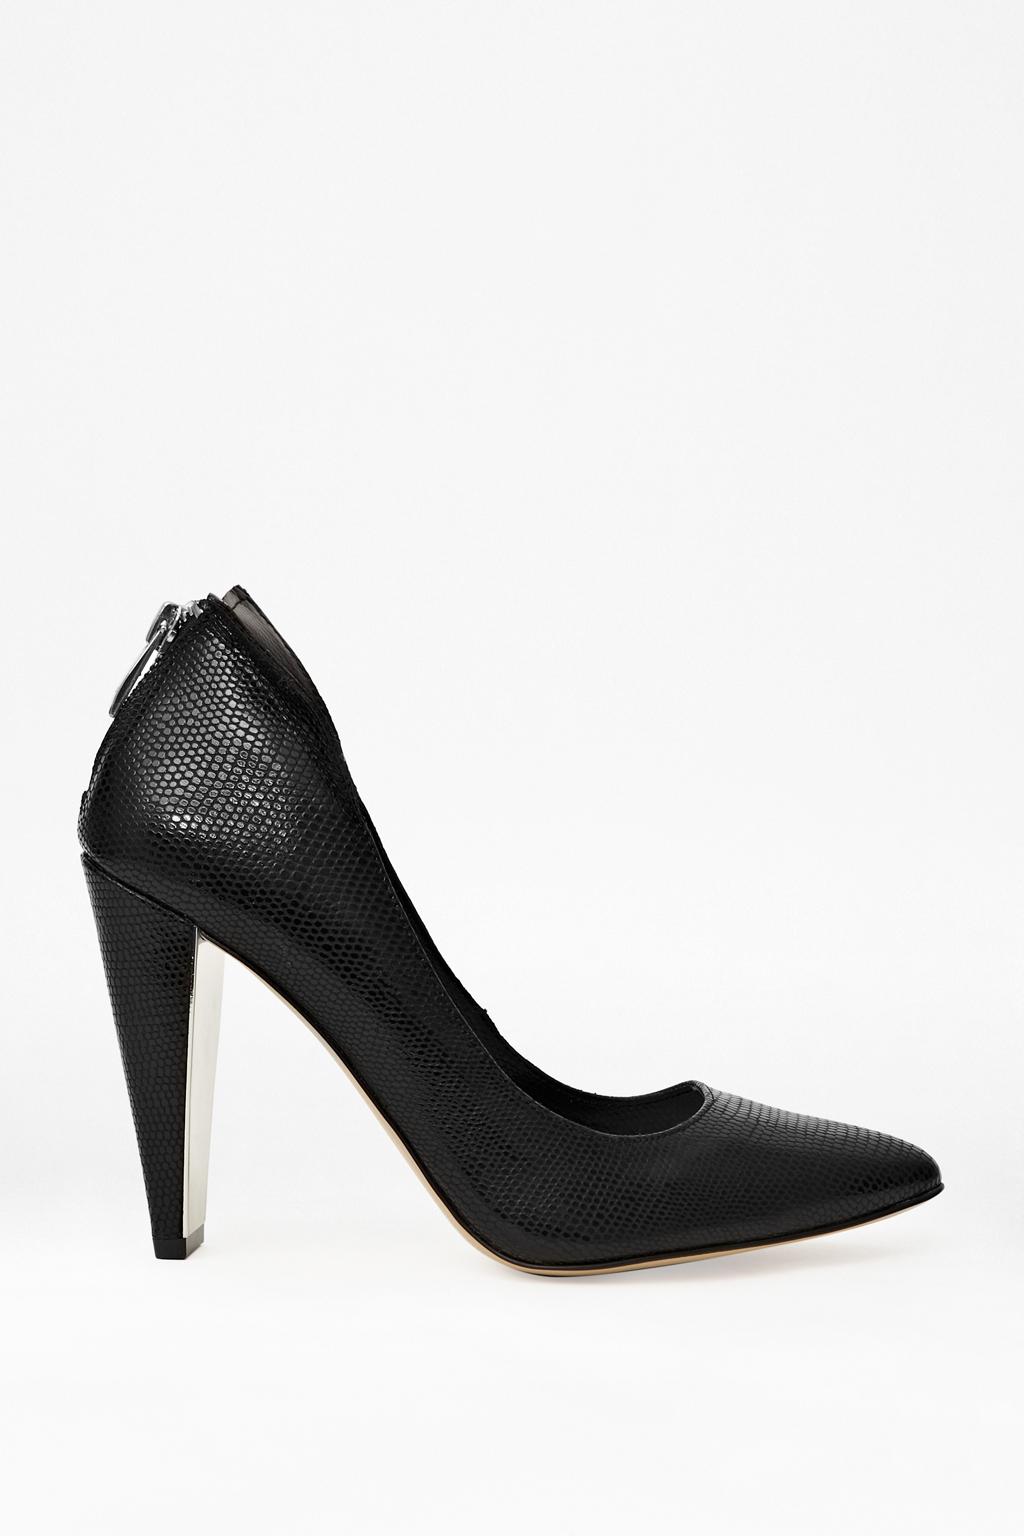 Myka Black Lizard Zipped Heels